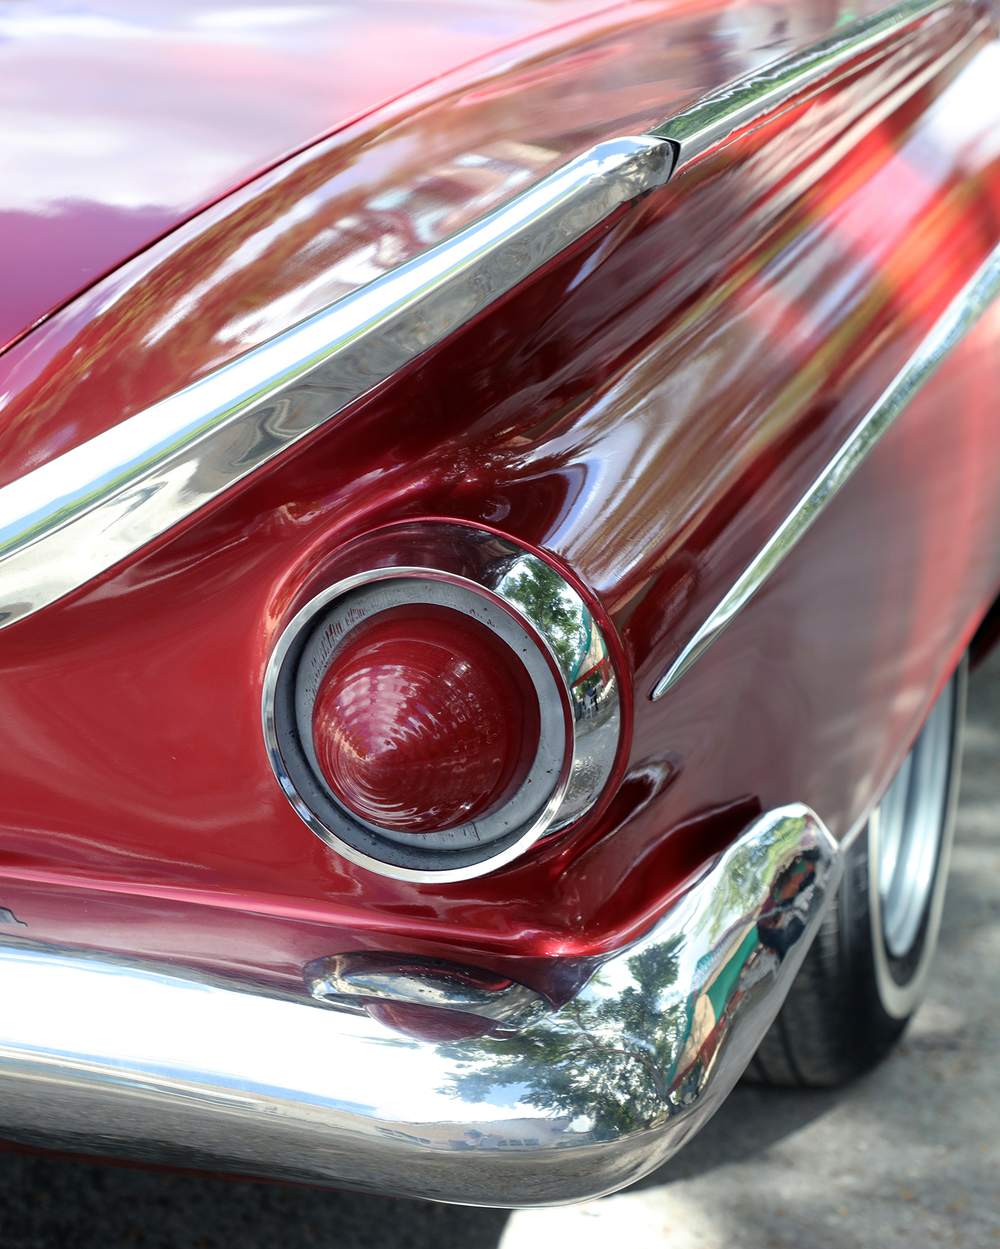 1959 Buick Tail Fin